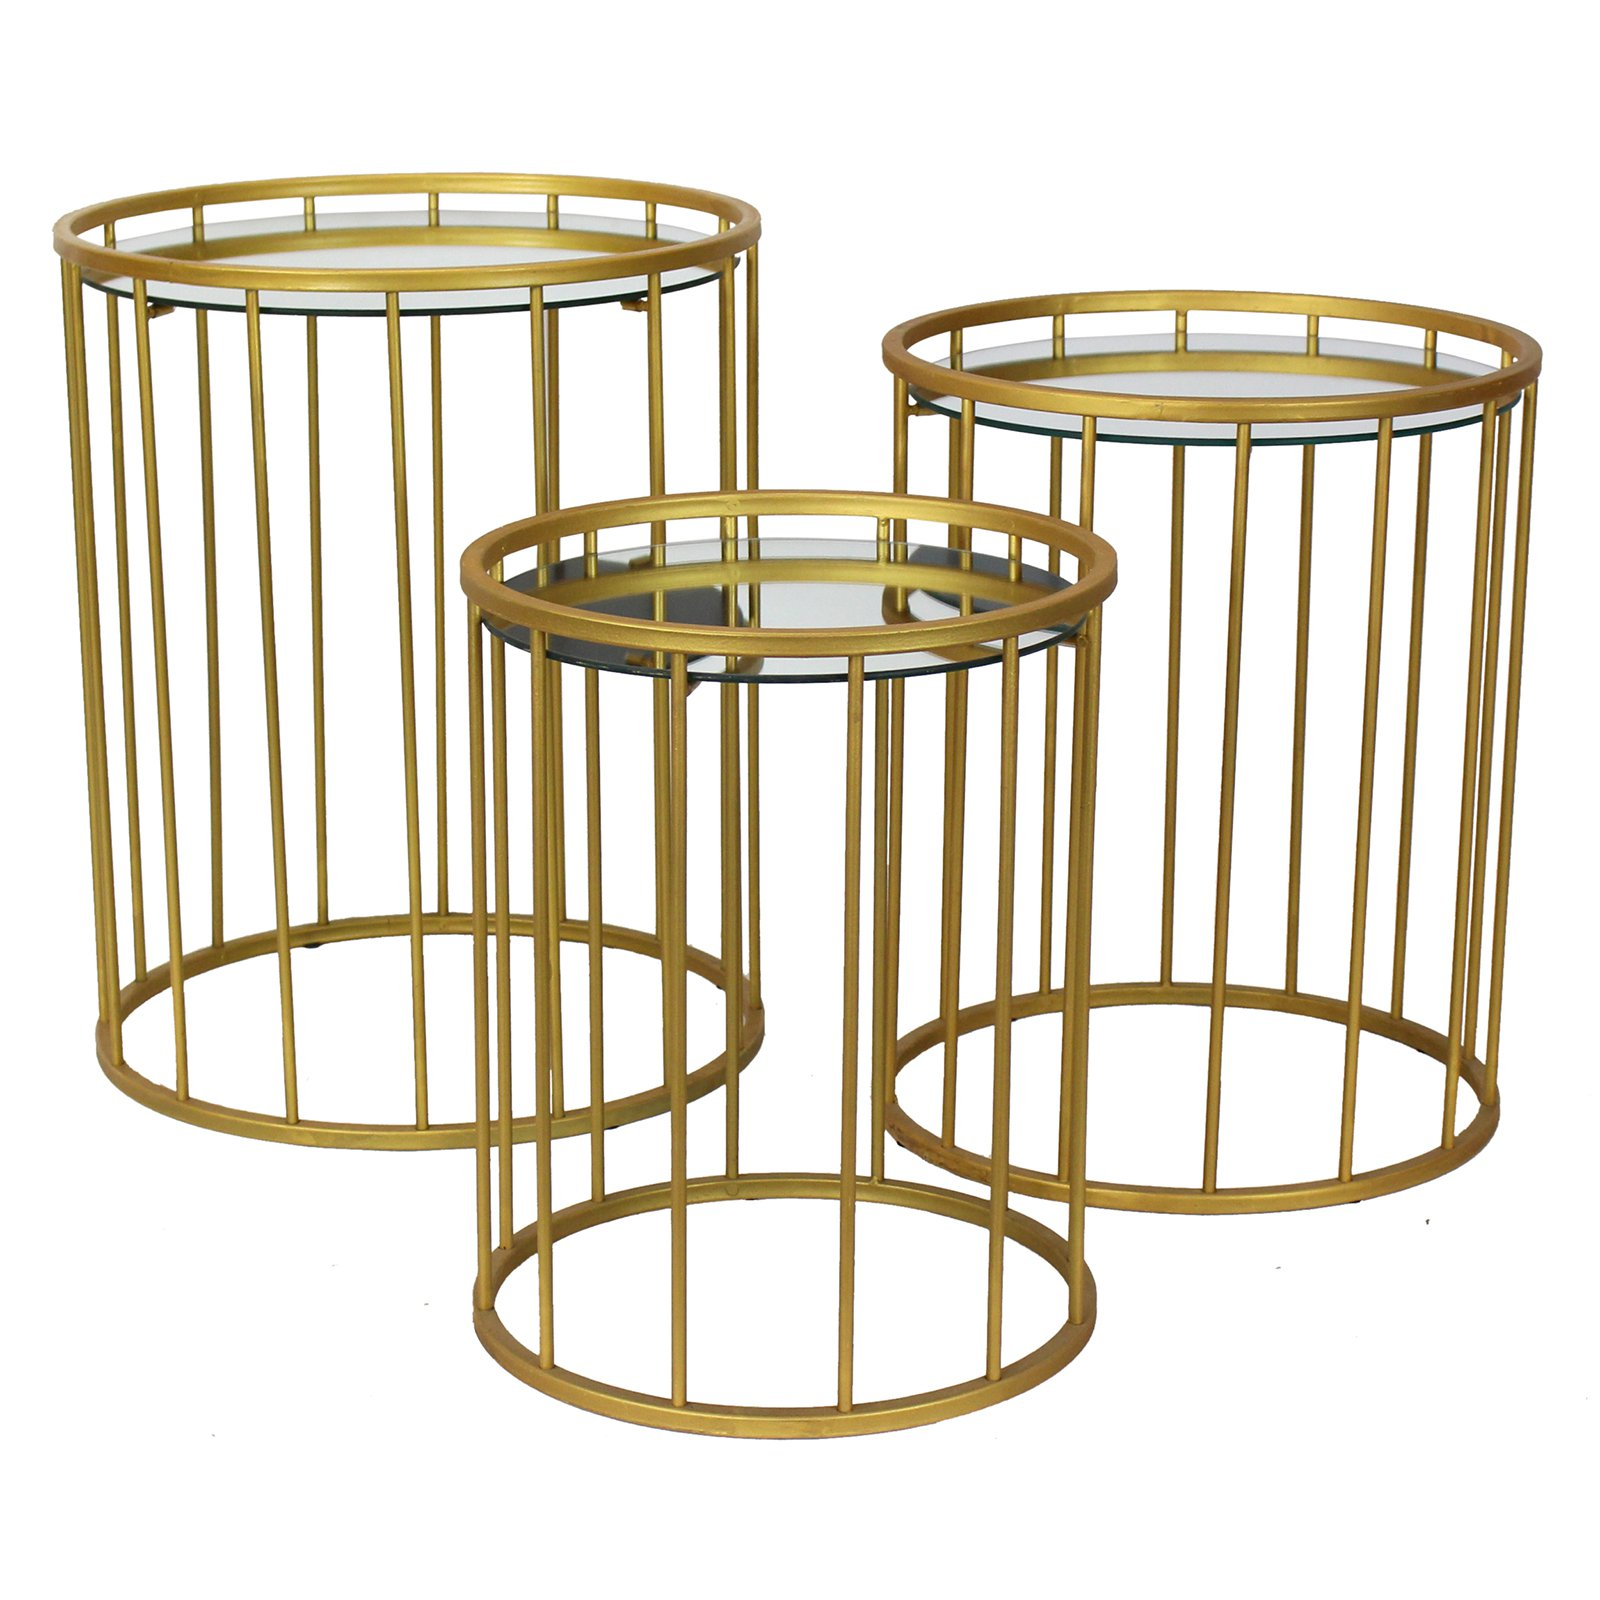 aspire home accents solange gold accent tables set table furniture edmonton blue lamp bronze destination lighting coupon round quilted toppers best nightstands feet nesting living